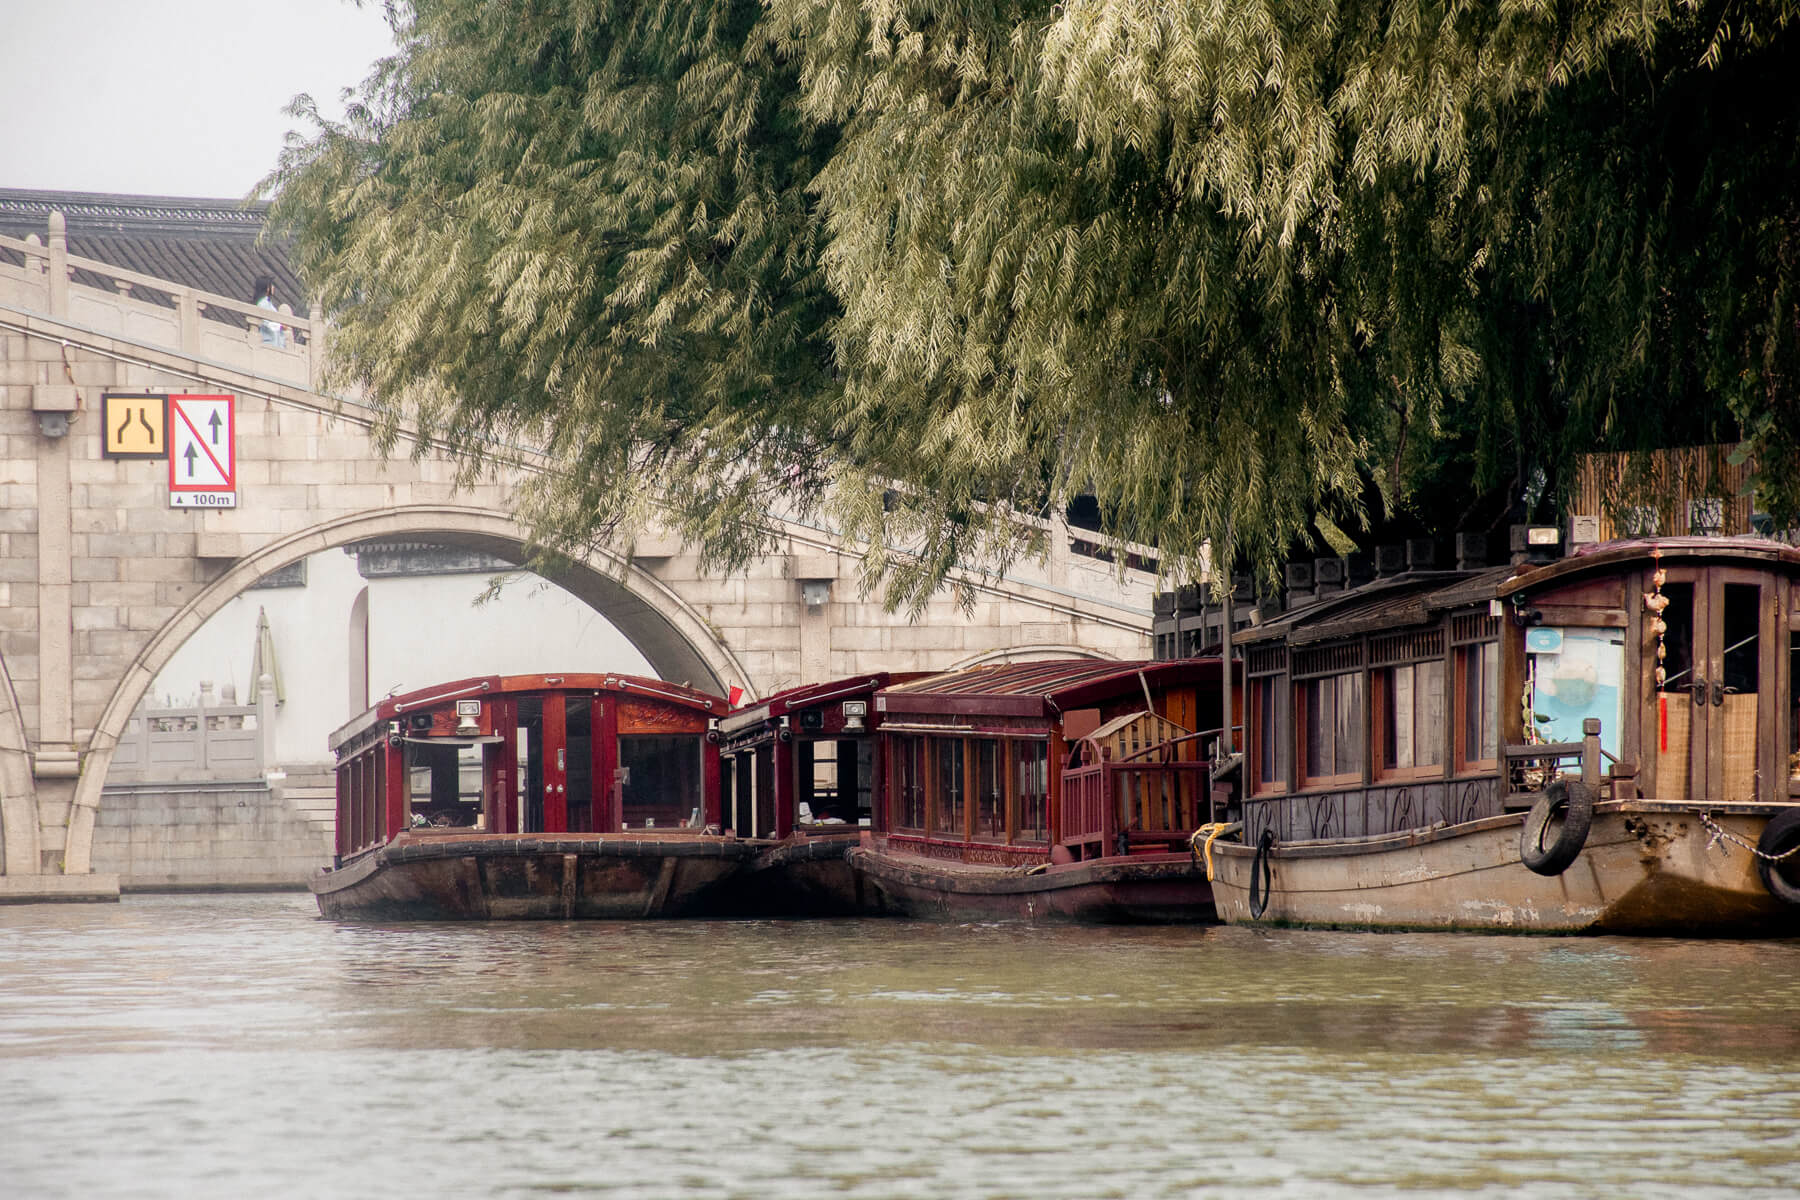 Old Chinese boats lined up on the bank of the Grand Canal in Suzhou